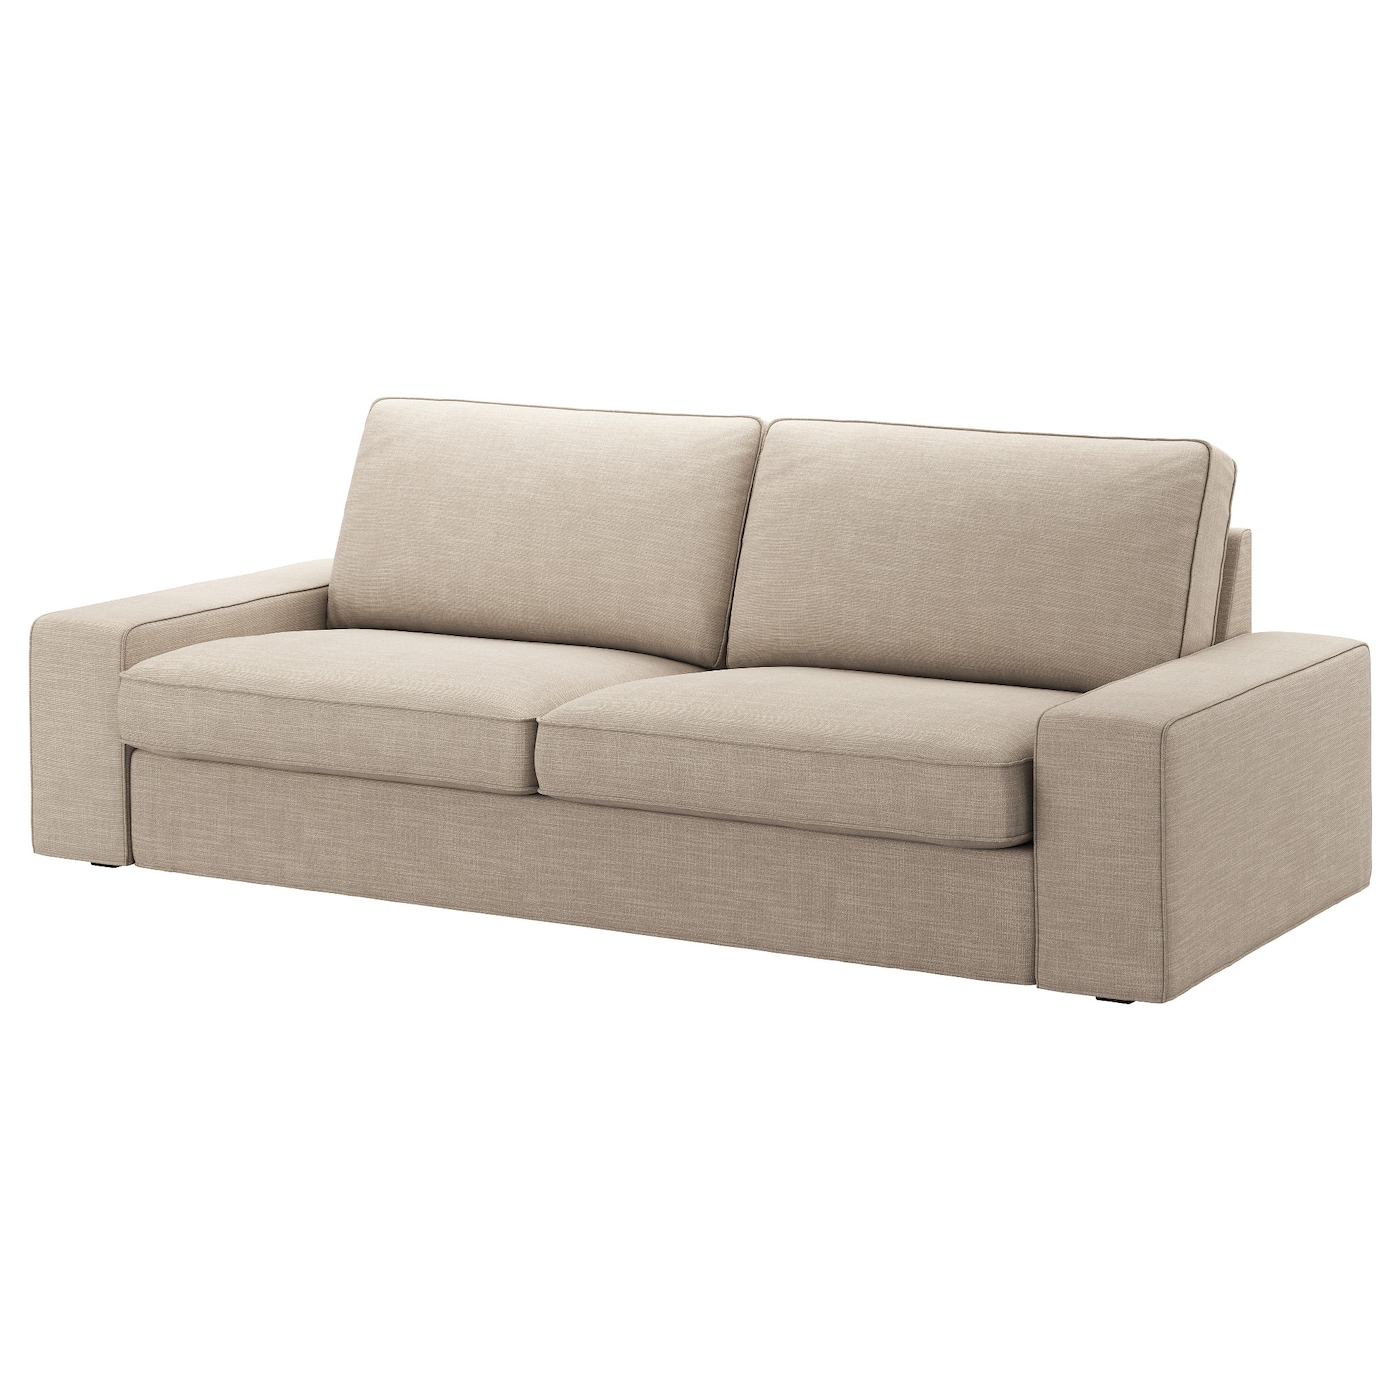 Kivik Three Seat Sofa Hillared Beige Ikea